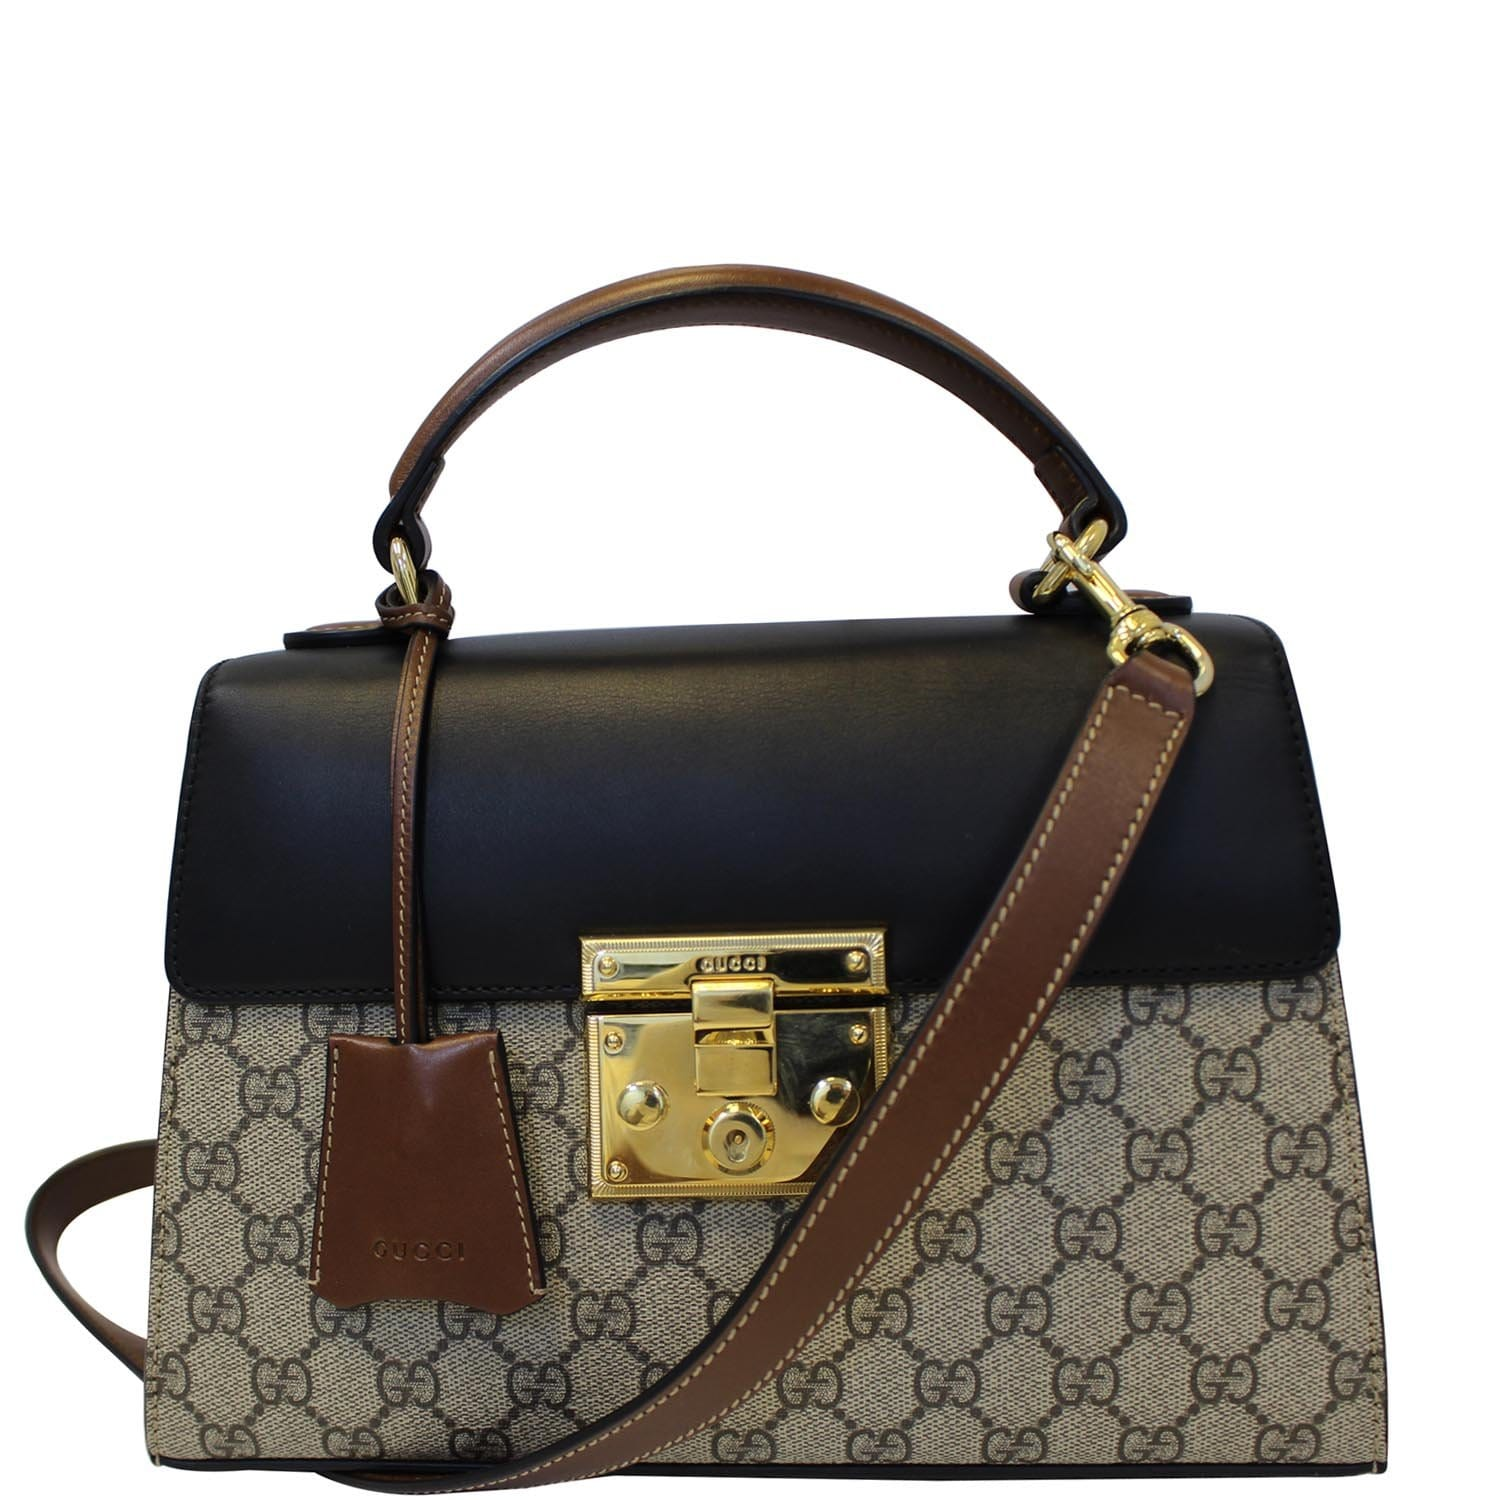 ae6abeff7159 GUCCI Small Padlock GG Supreme Monogram Top Handle Crossbody Bag Beige